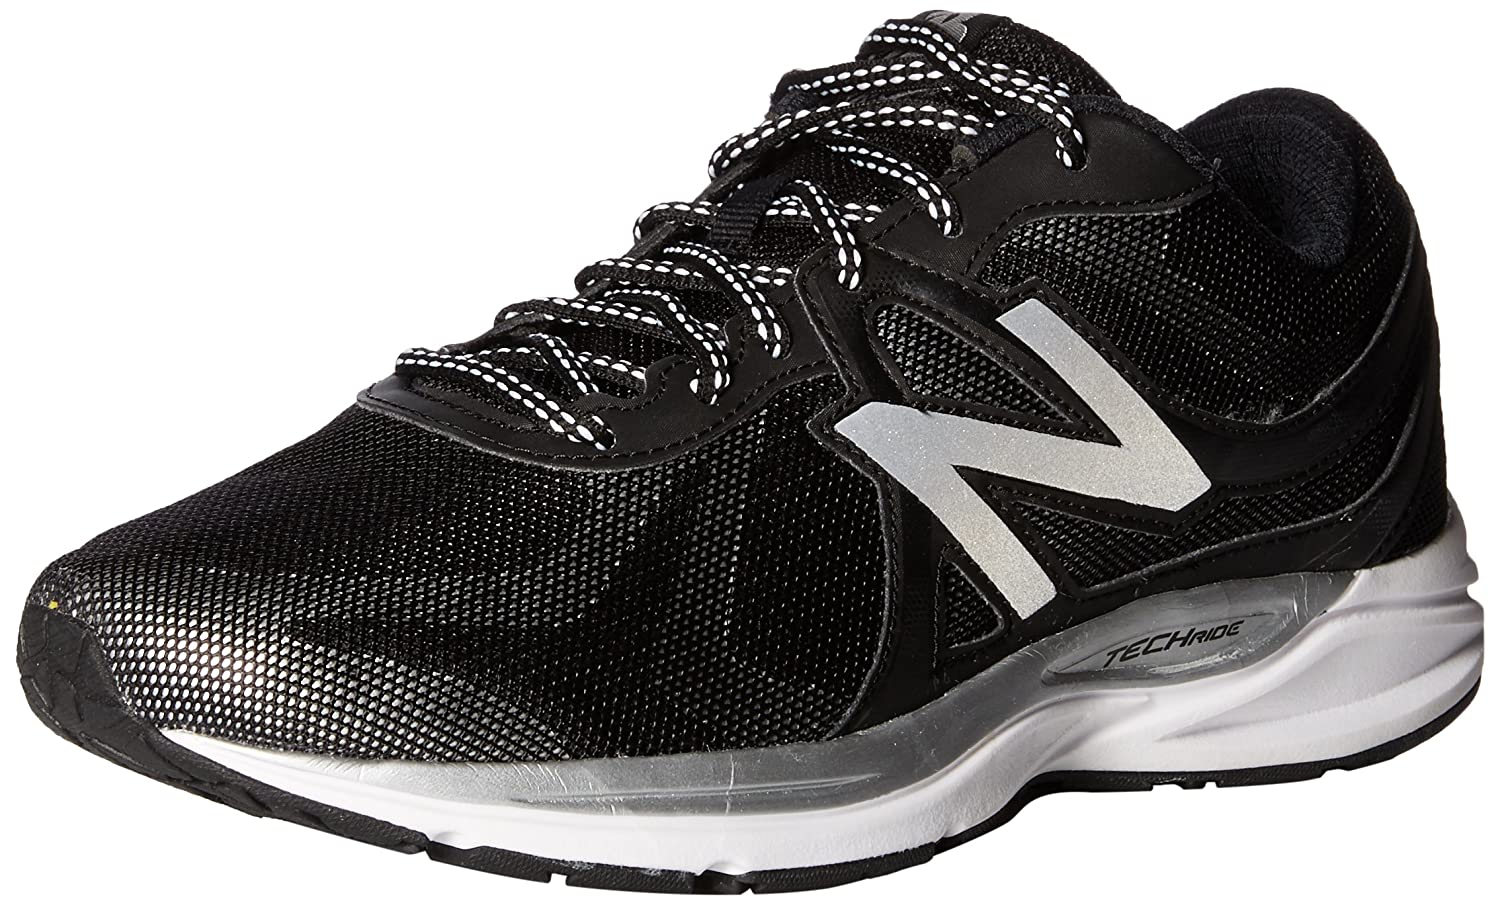 New Balance Women's W580LG5 Running Shoe B01CQV70VM 6.5 D US|Black